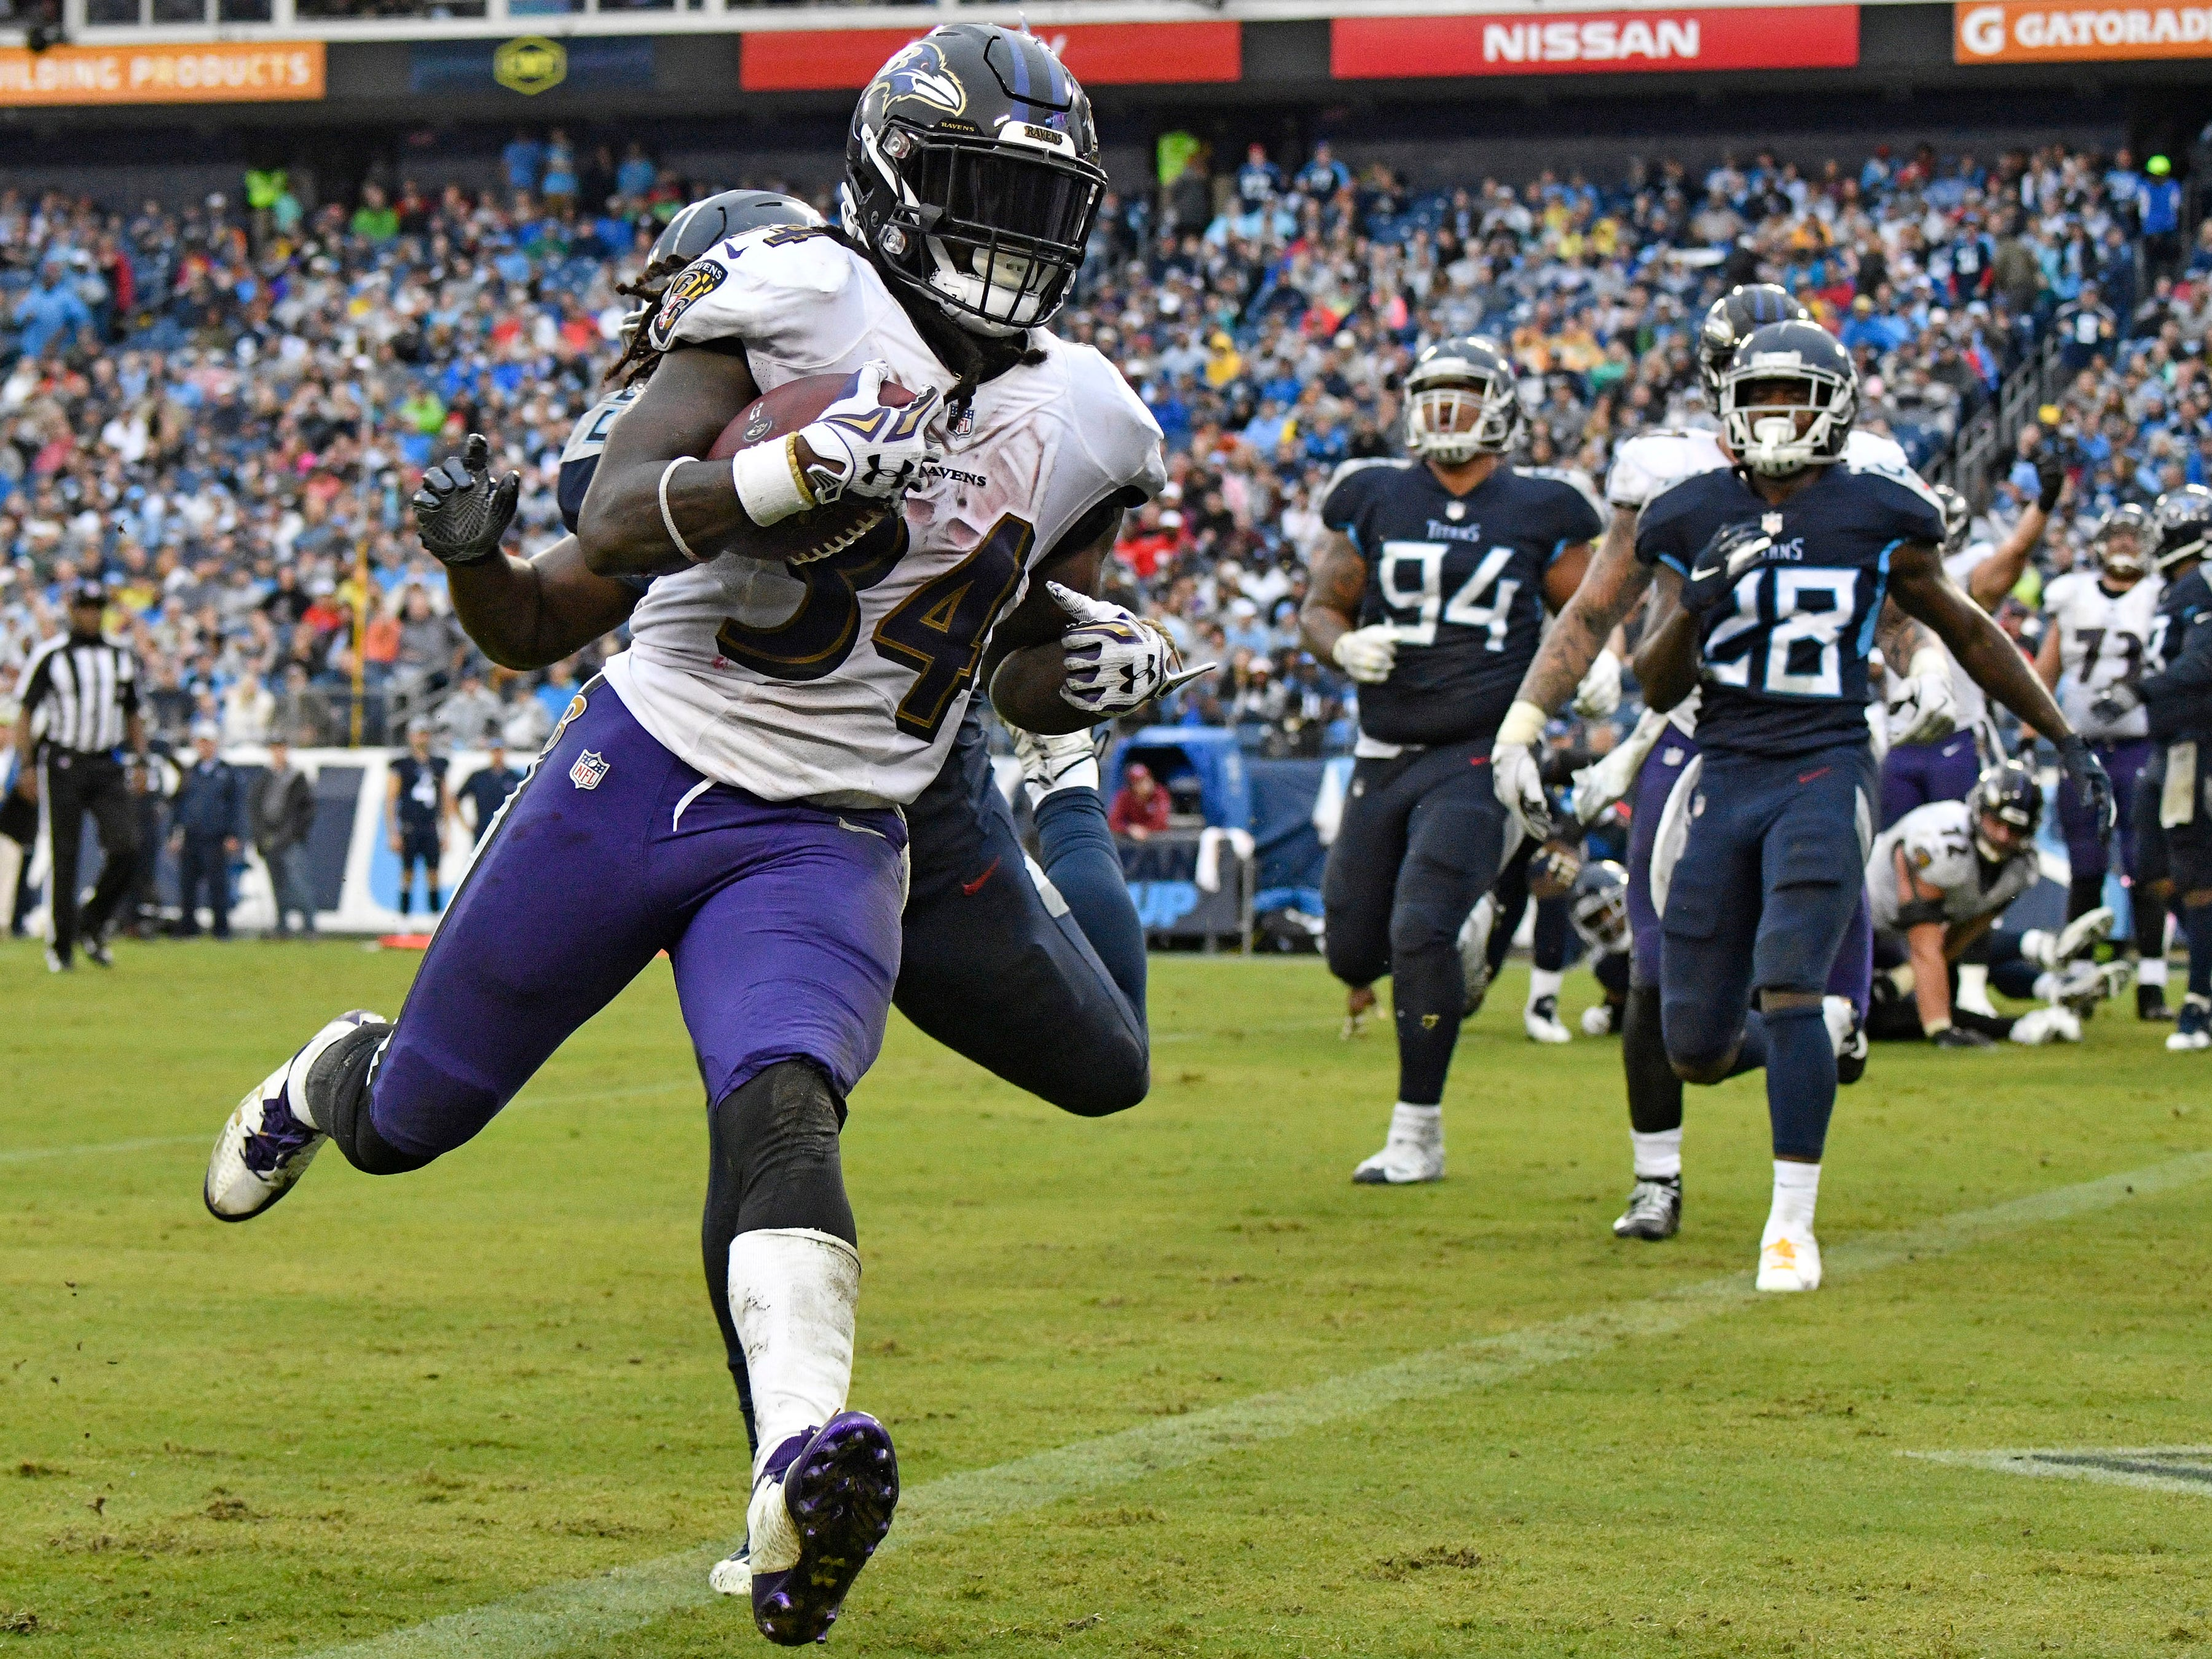 Worst loss runner-up: Ravens 21, Titans 0 (Oct. 14 in Nashville) -- Ravens running back Alex Collins (34) goes in for his second touchdown of the game as the Titans can only watch at Nissan Stadium Sunday, Oct. 14, 2018, in Nashville, Tenn.